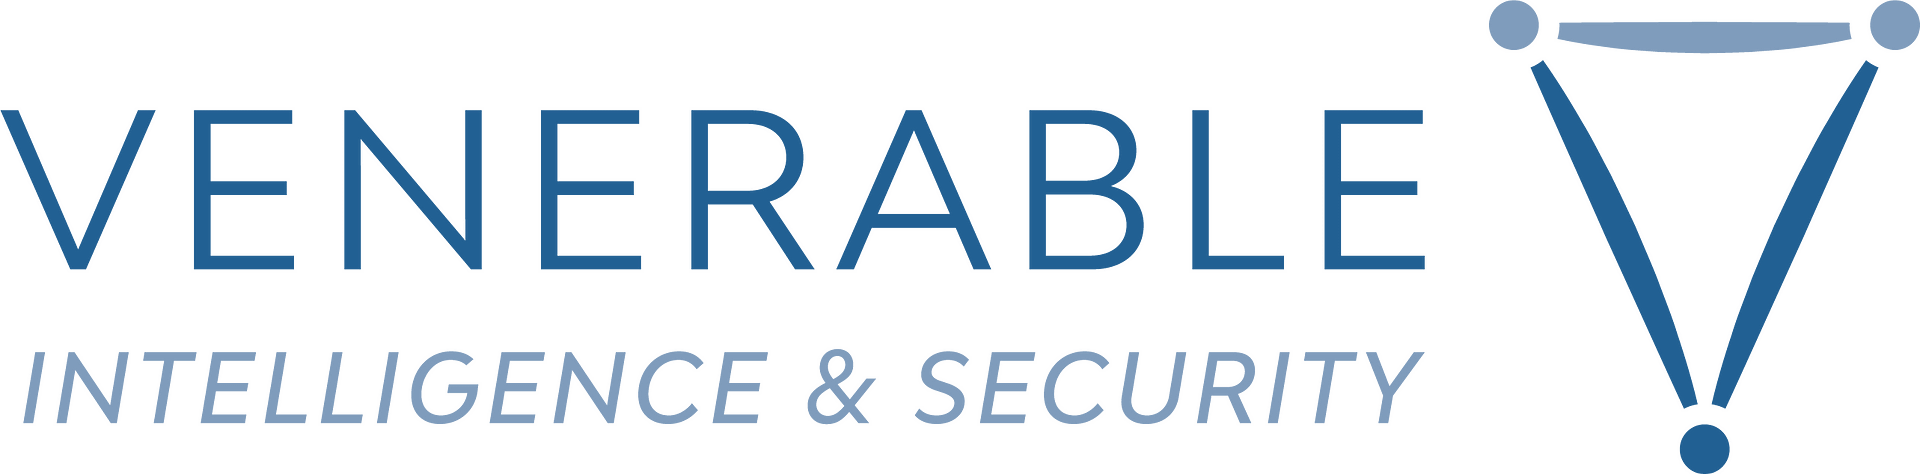 Venerable Intelligence and Security Logo